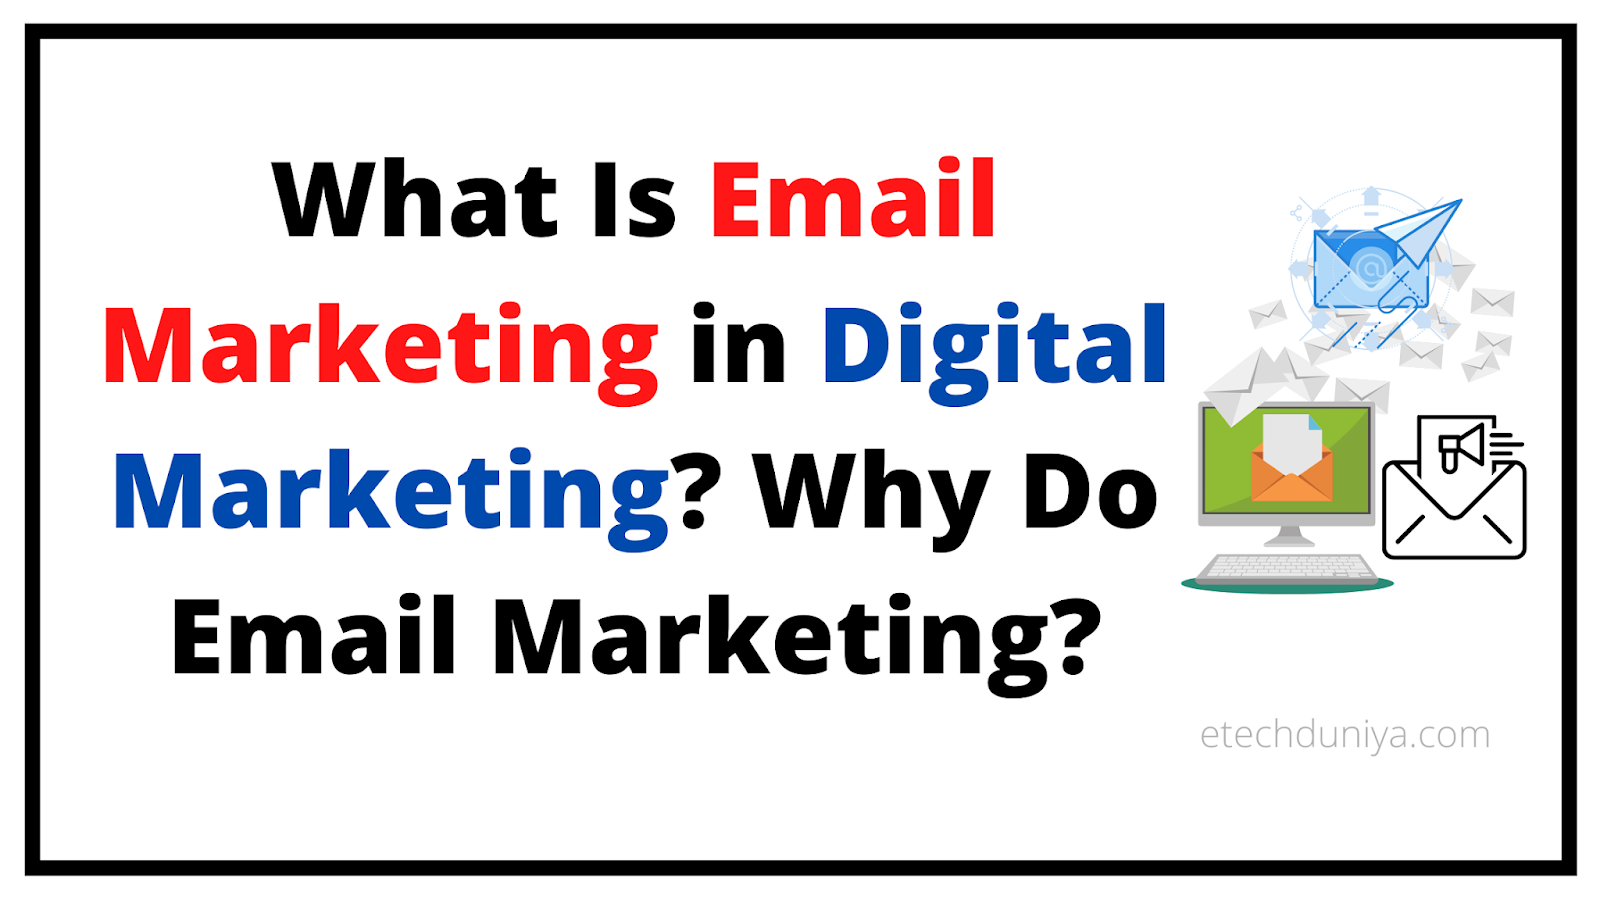 What Is Email Marketing in Digital Marketing? Why Do Email Marketing?